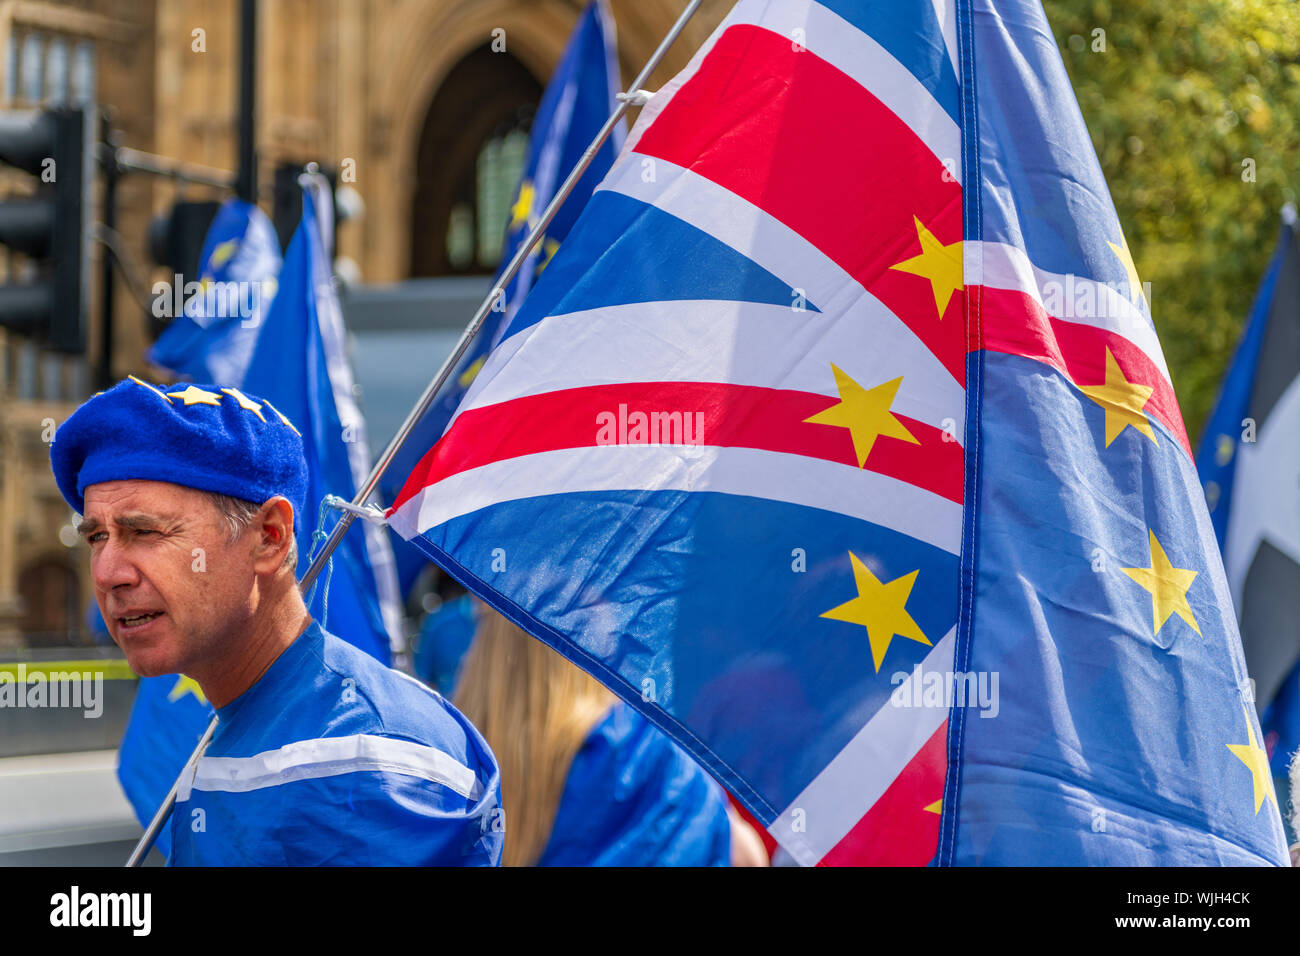 Westminster, London, England. 3rd September, 2019. A Stop Brexit demonstrator joins fellow protestors at a 'Stop the Coup' rally outside the Houses of Parliament. Terry Mathews/Alamy Live News Stock Photo